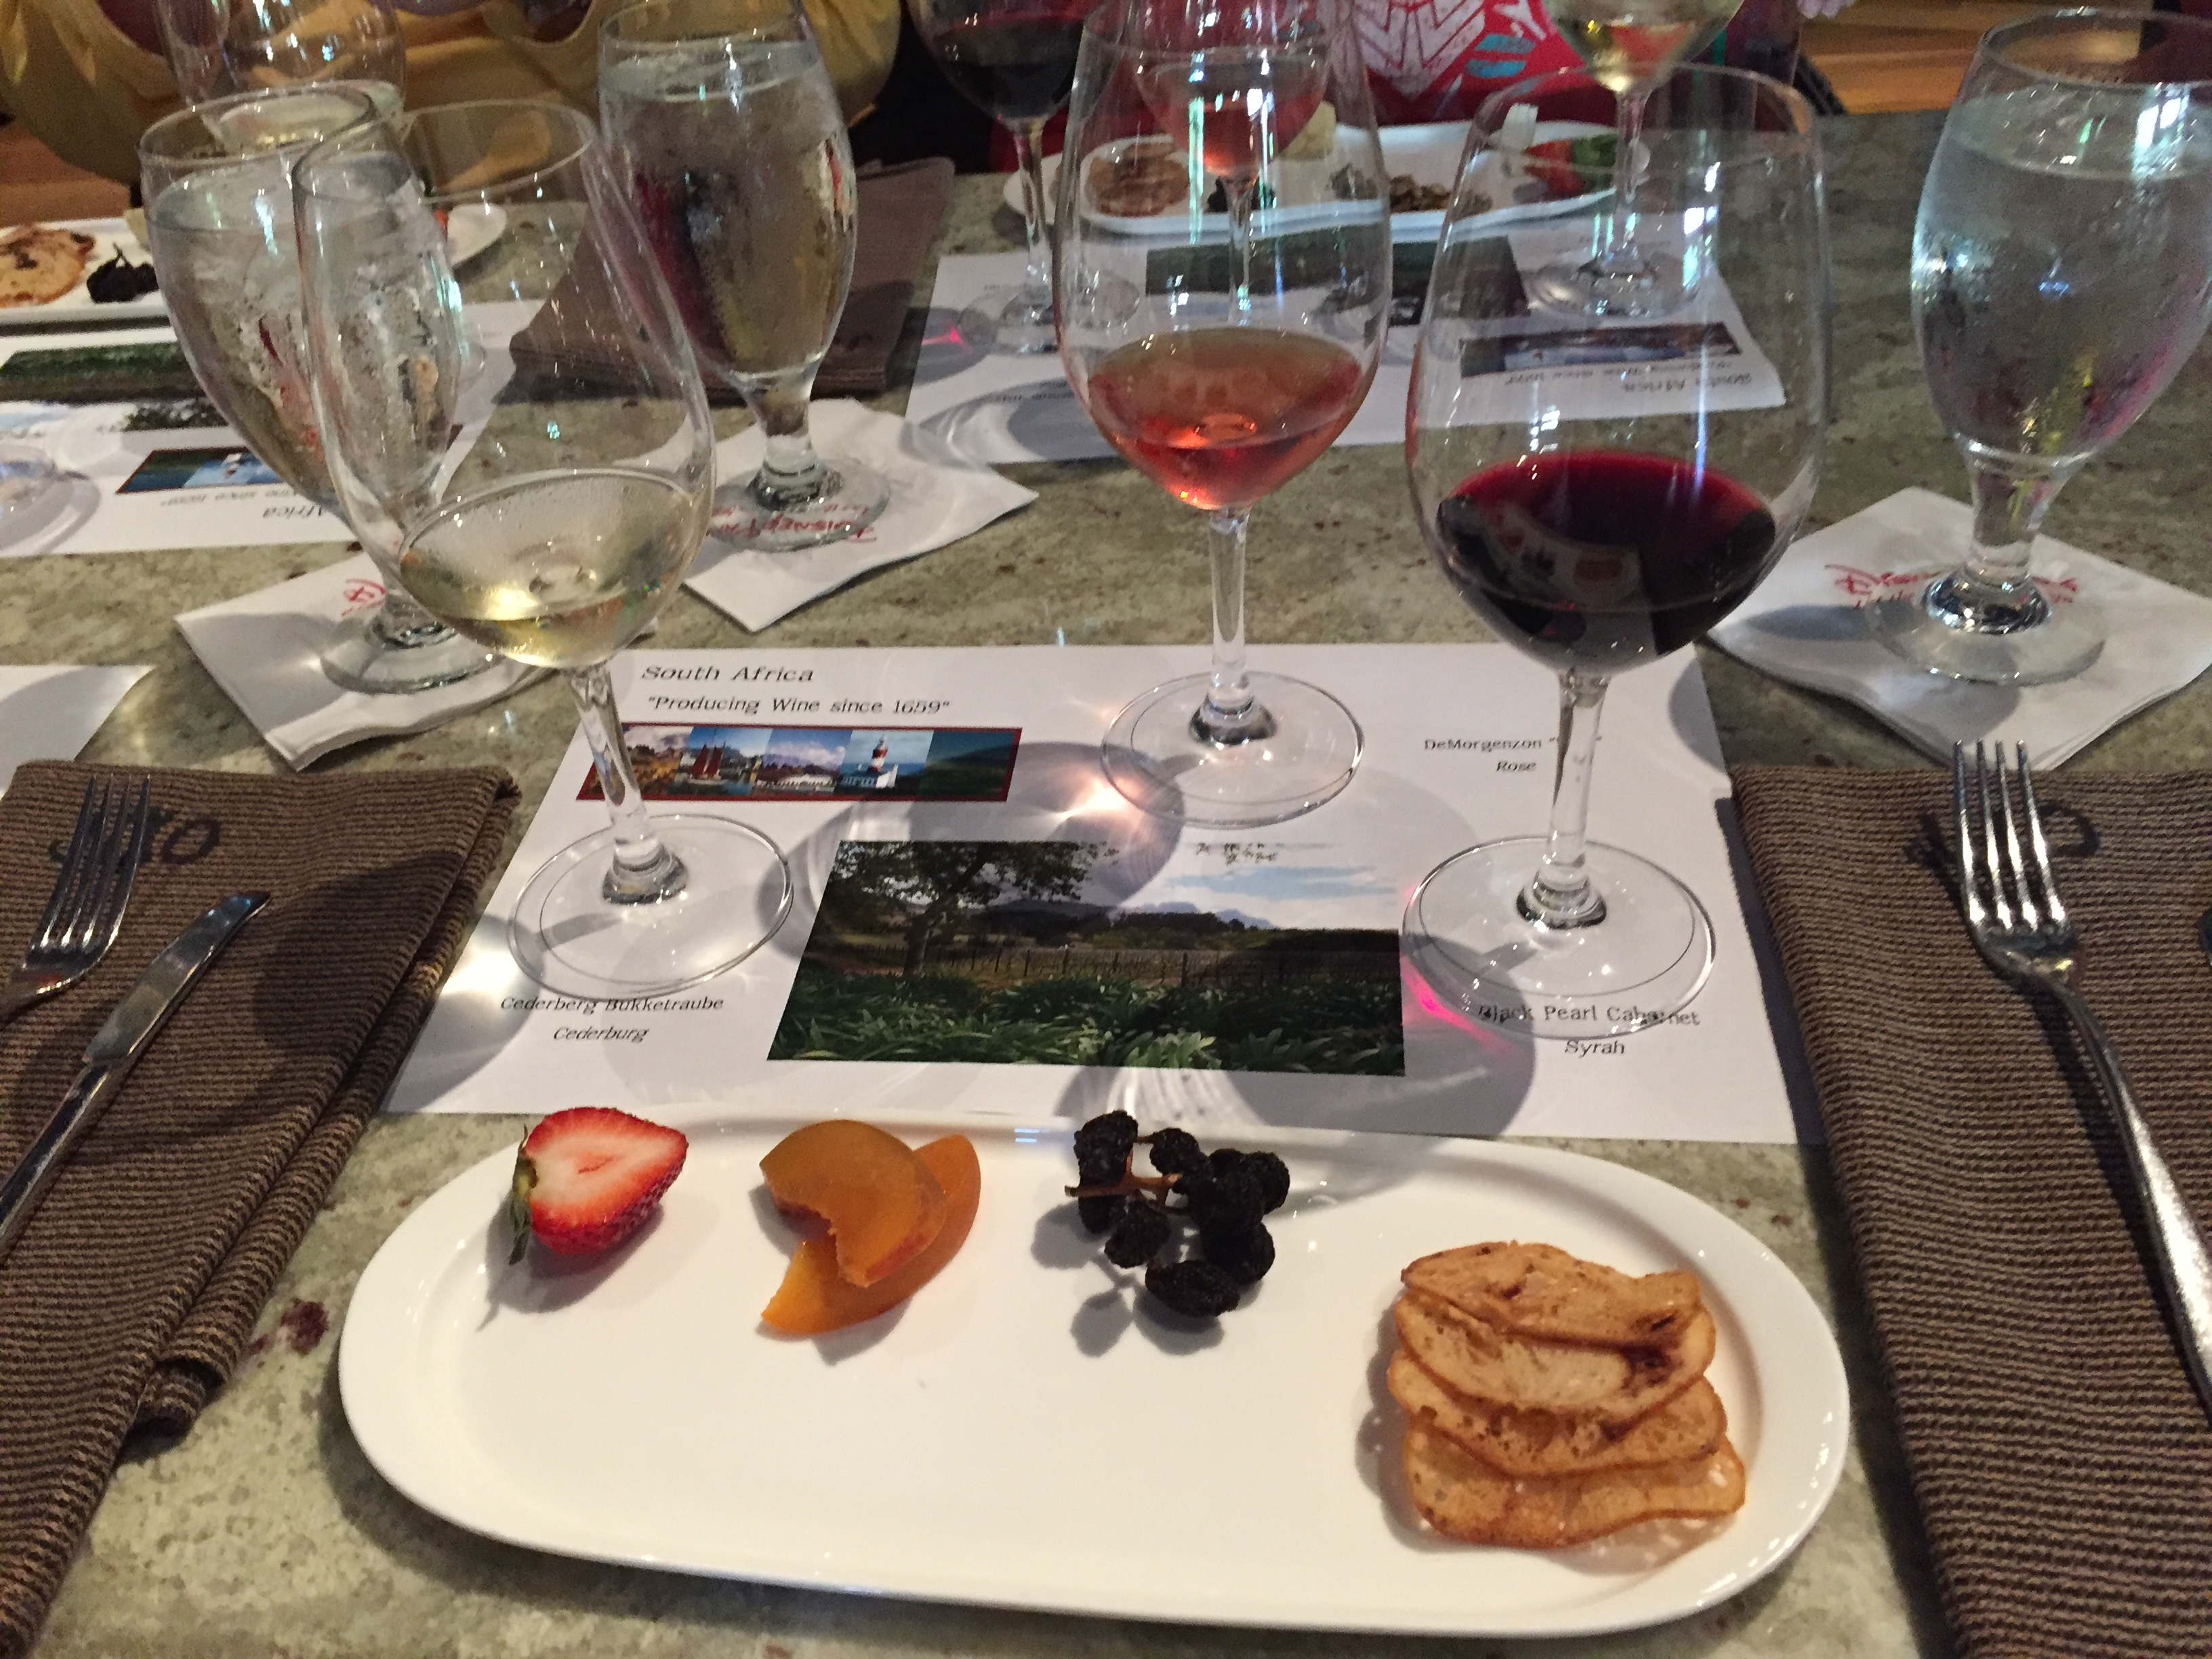 Jiko Wine Tasting at Disney World. Learn about South African wines! #disneyworld #wine #travel